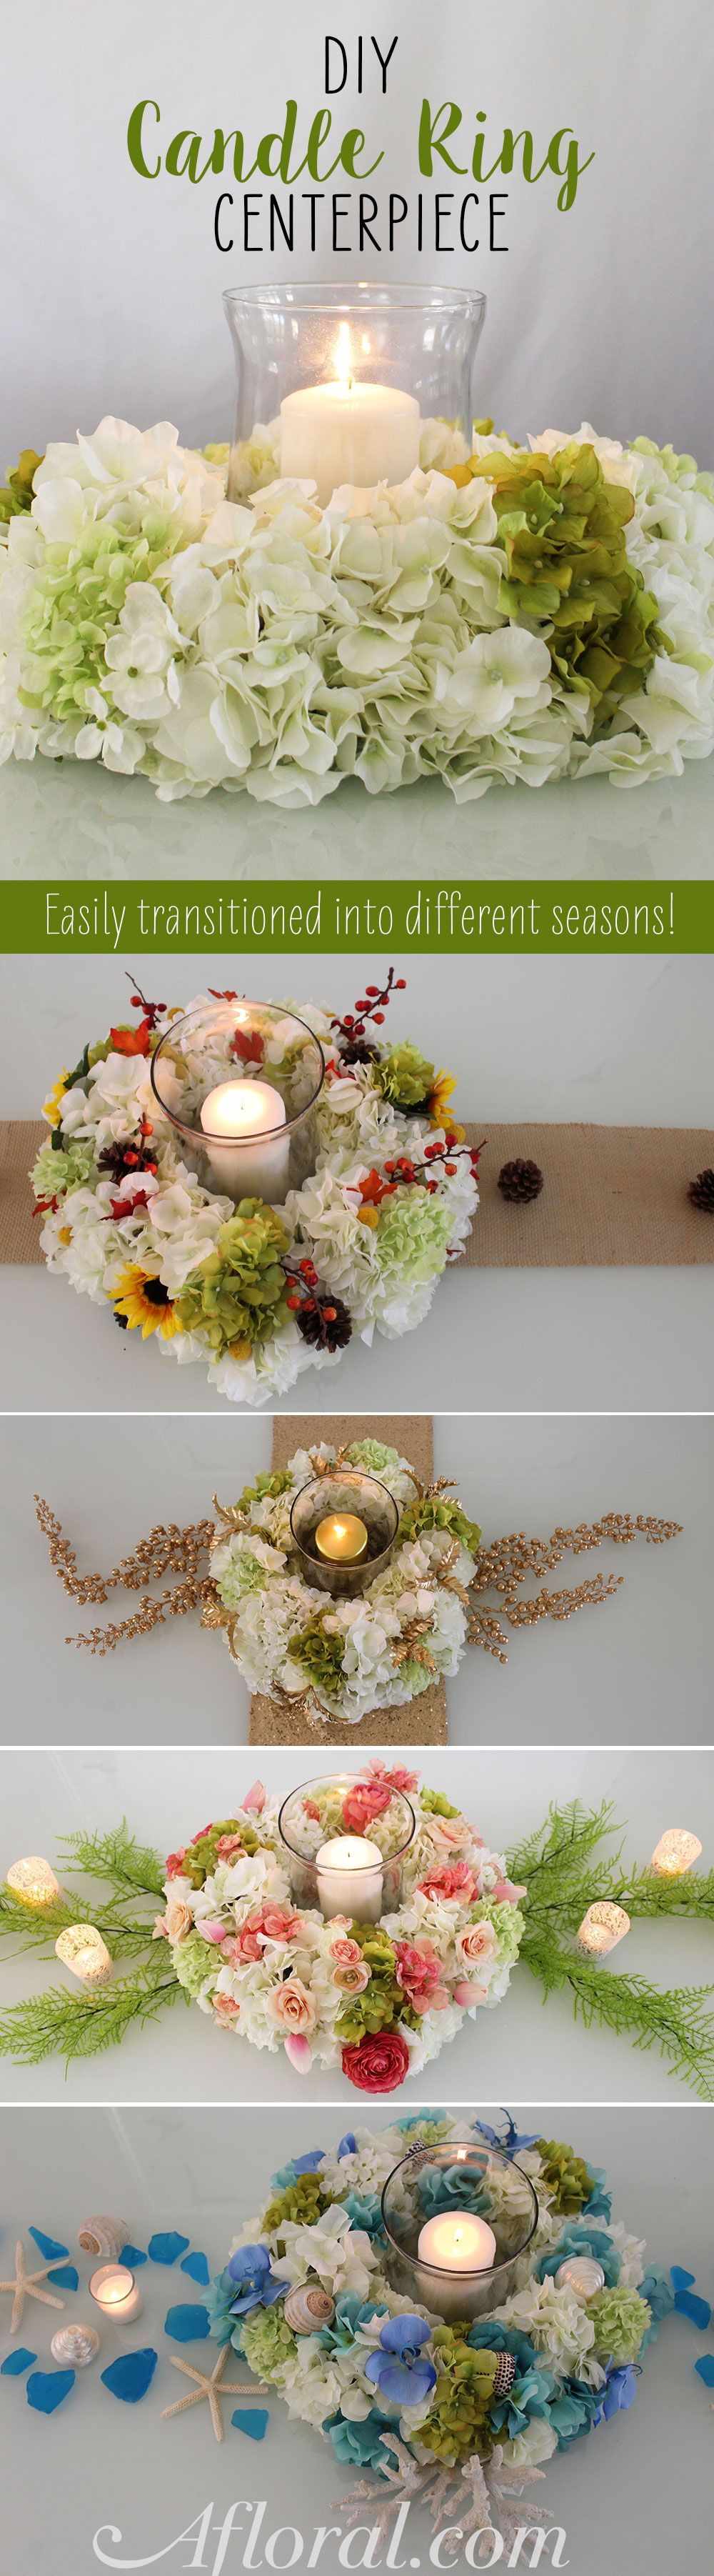 Diy Candle Ring Centerpiece Wedding Centerpieces Pinterest